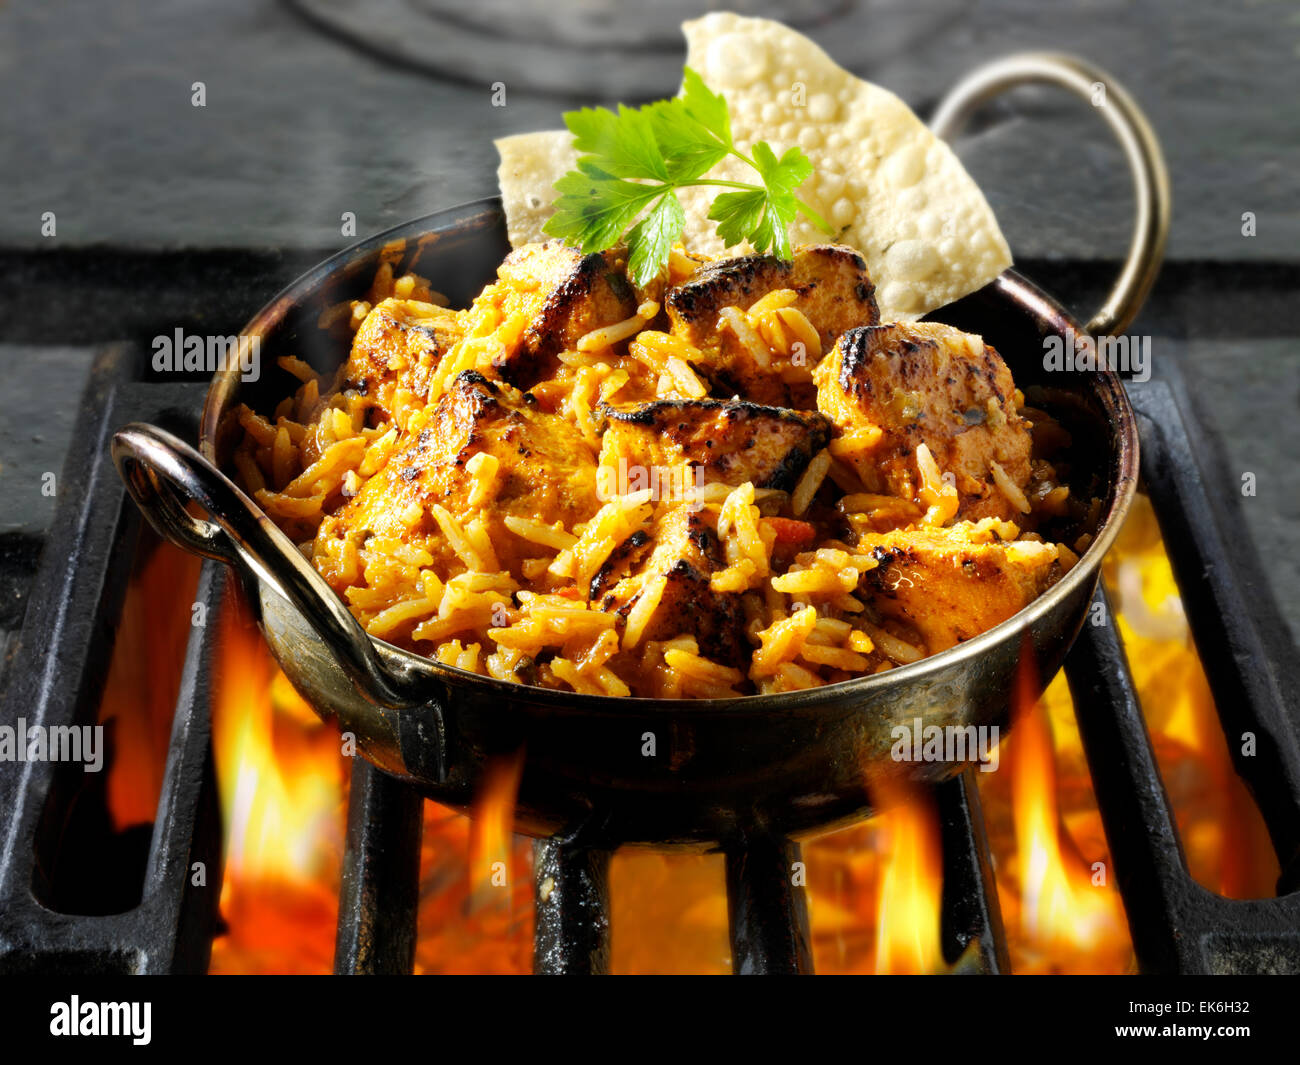 Chicken Tikka Byriani being cooked in a pan.  Indian food recipe. - Stock Image